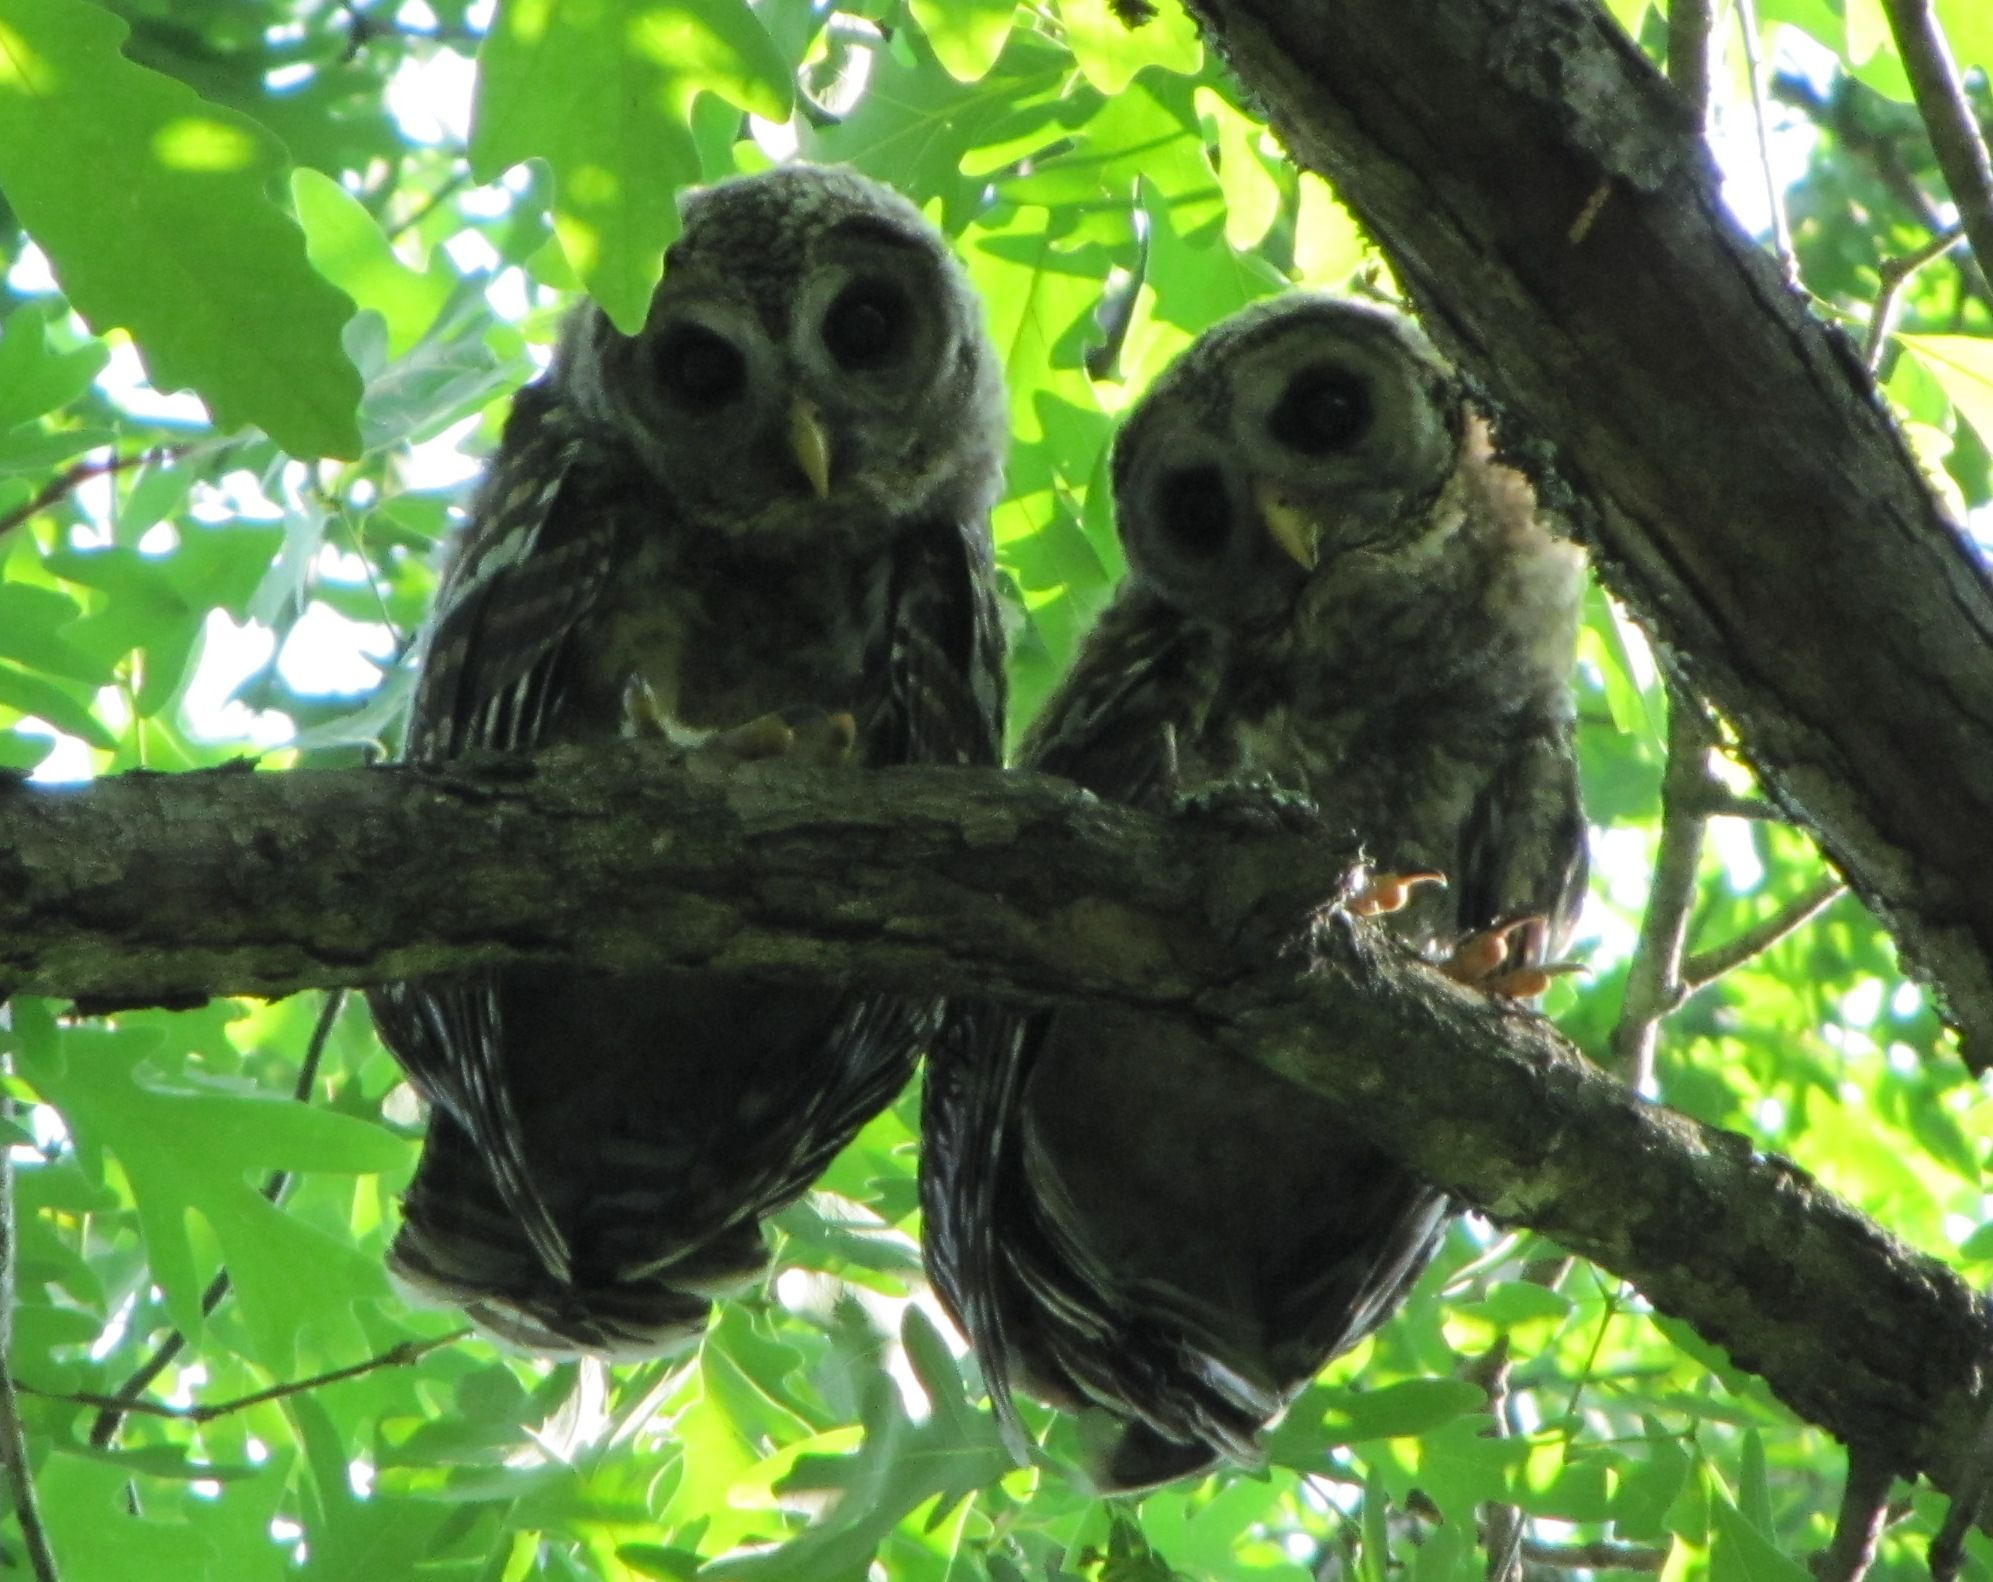 So cute. Notice how big their eyes are. They find prey by